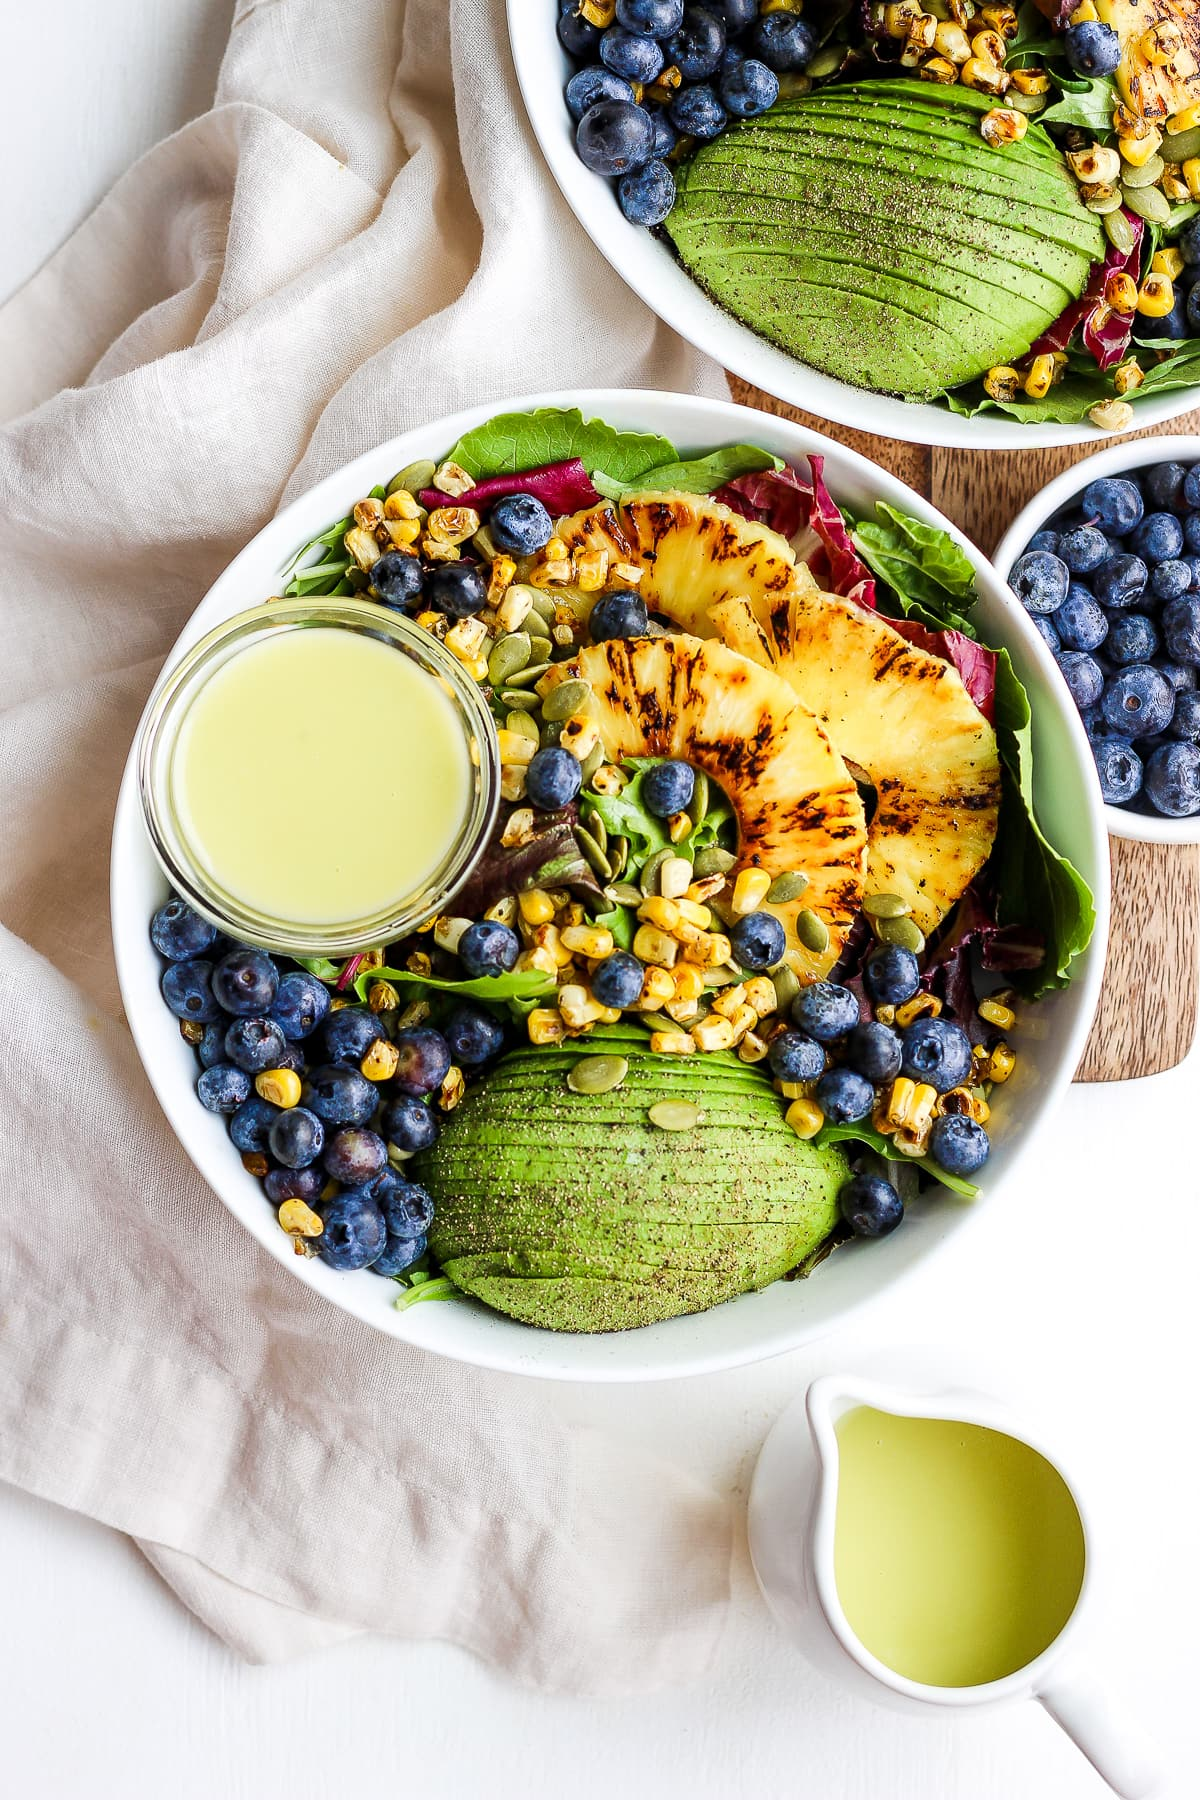 Creamy Citrus Dressing + Seared Pineapple Salad - a light and refreshing summer salad with the most delicious citrus dressing! #vegan #whole30 #paleo #salad